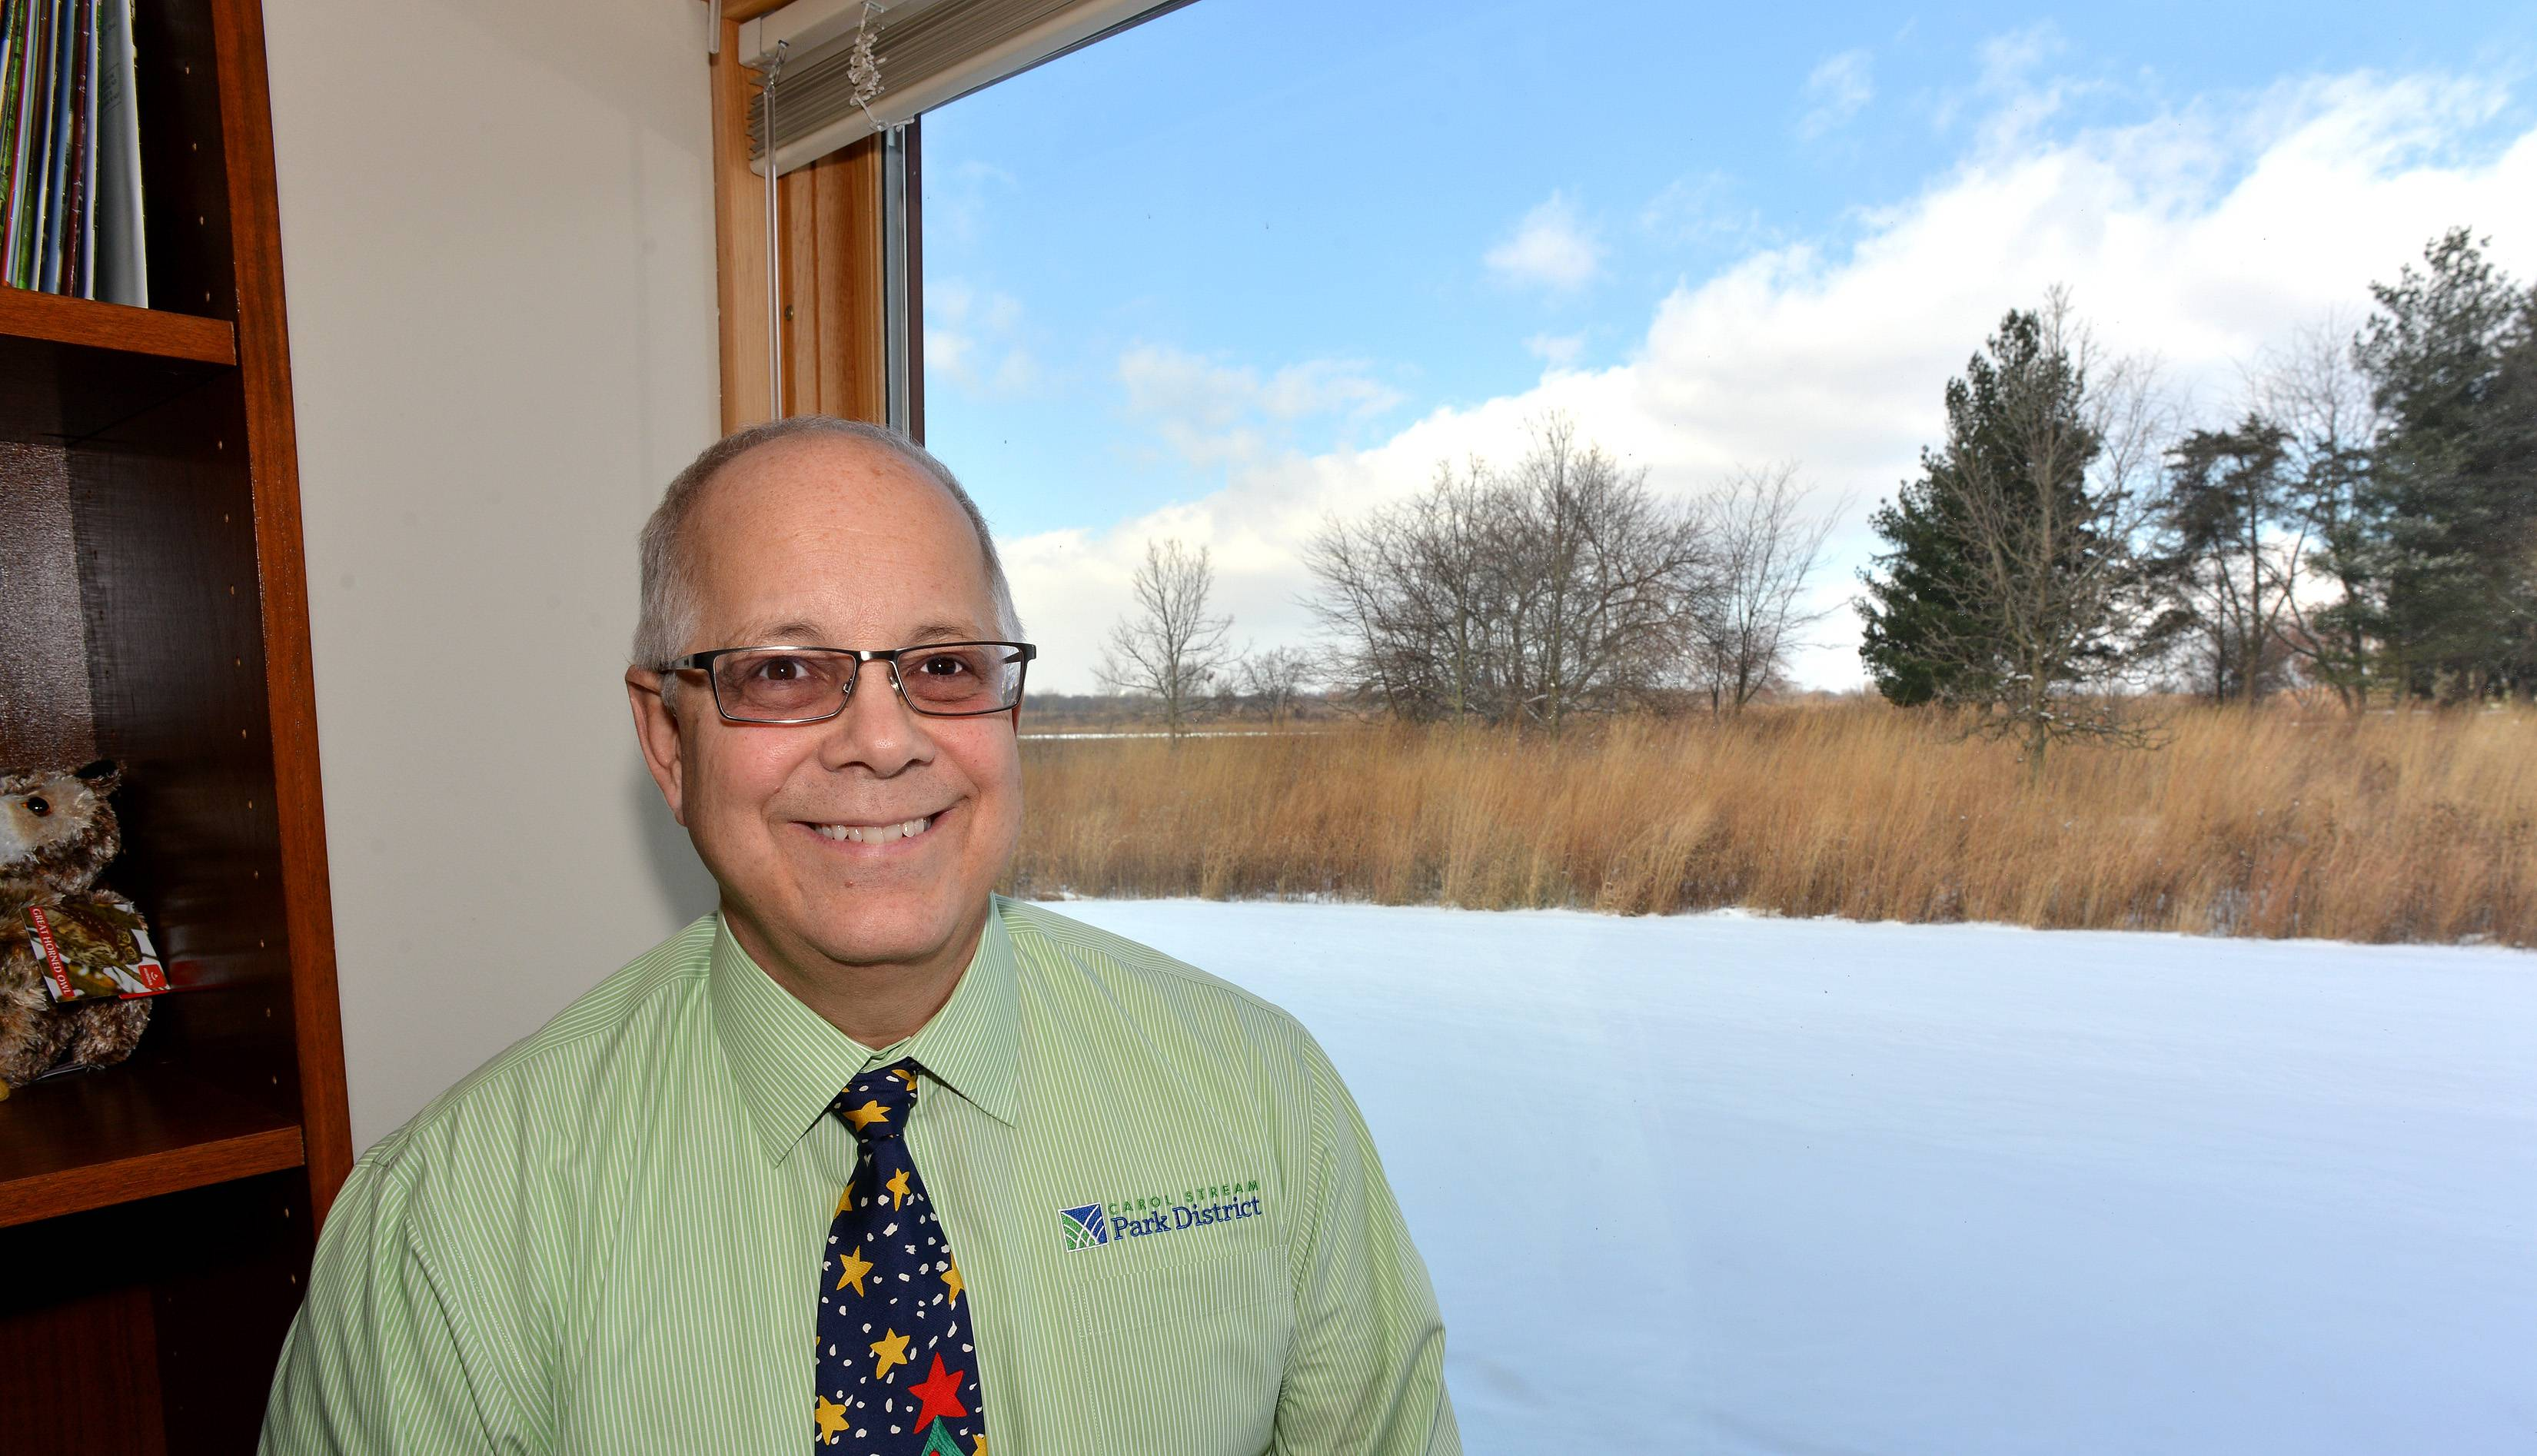 DuPage County forest director says he was forced out